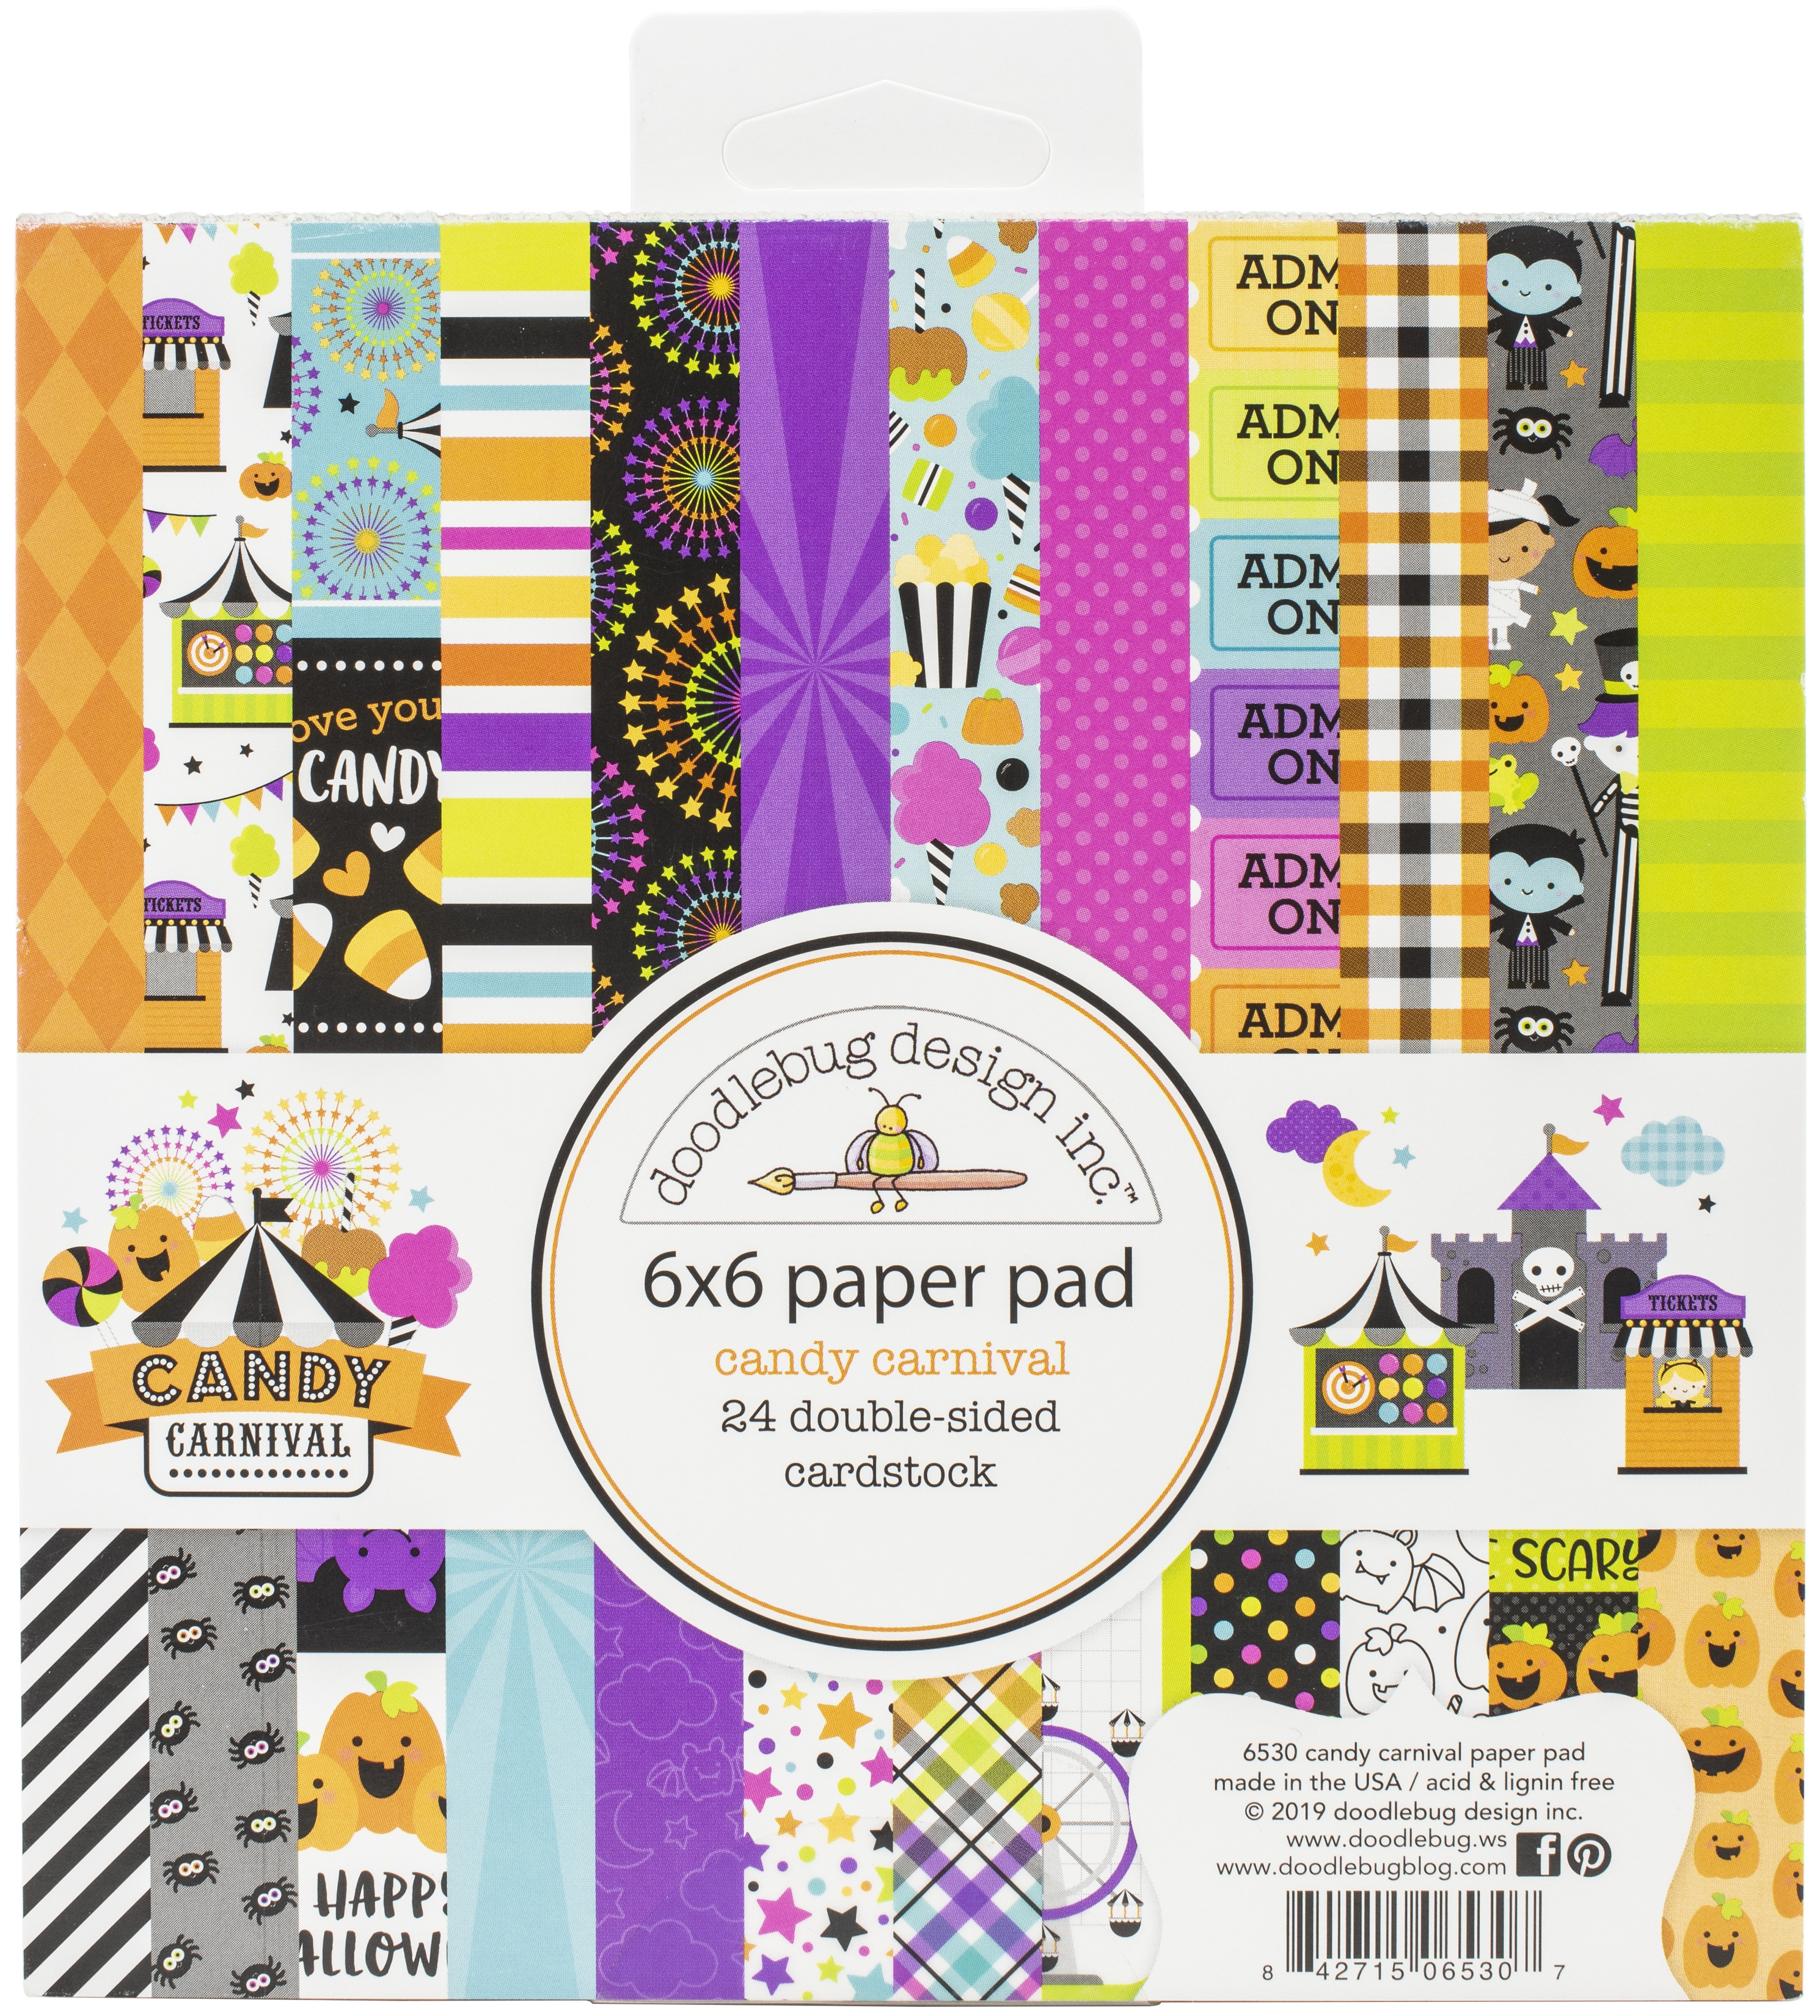 Doodlebug Double-Sided Paper Pad 6X6 24/Pkg-Candy Carnival, 12 Designs/2 Each